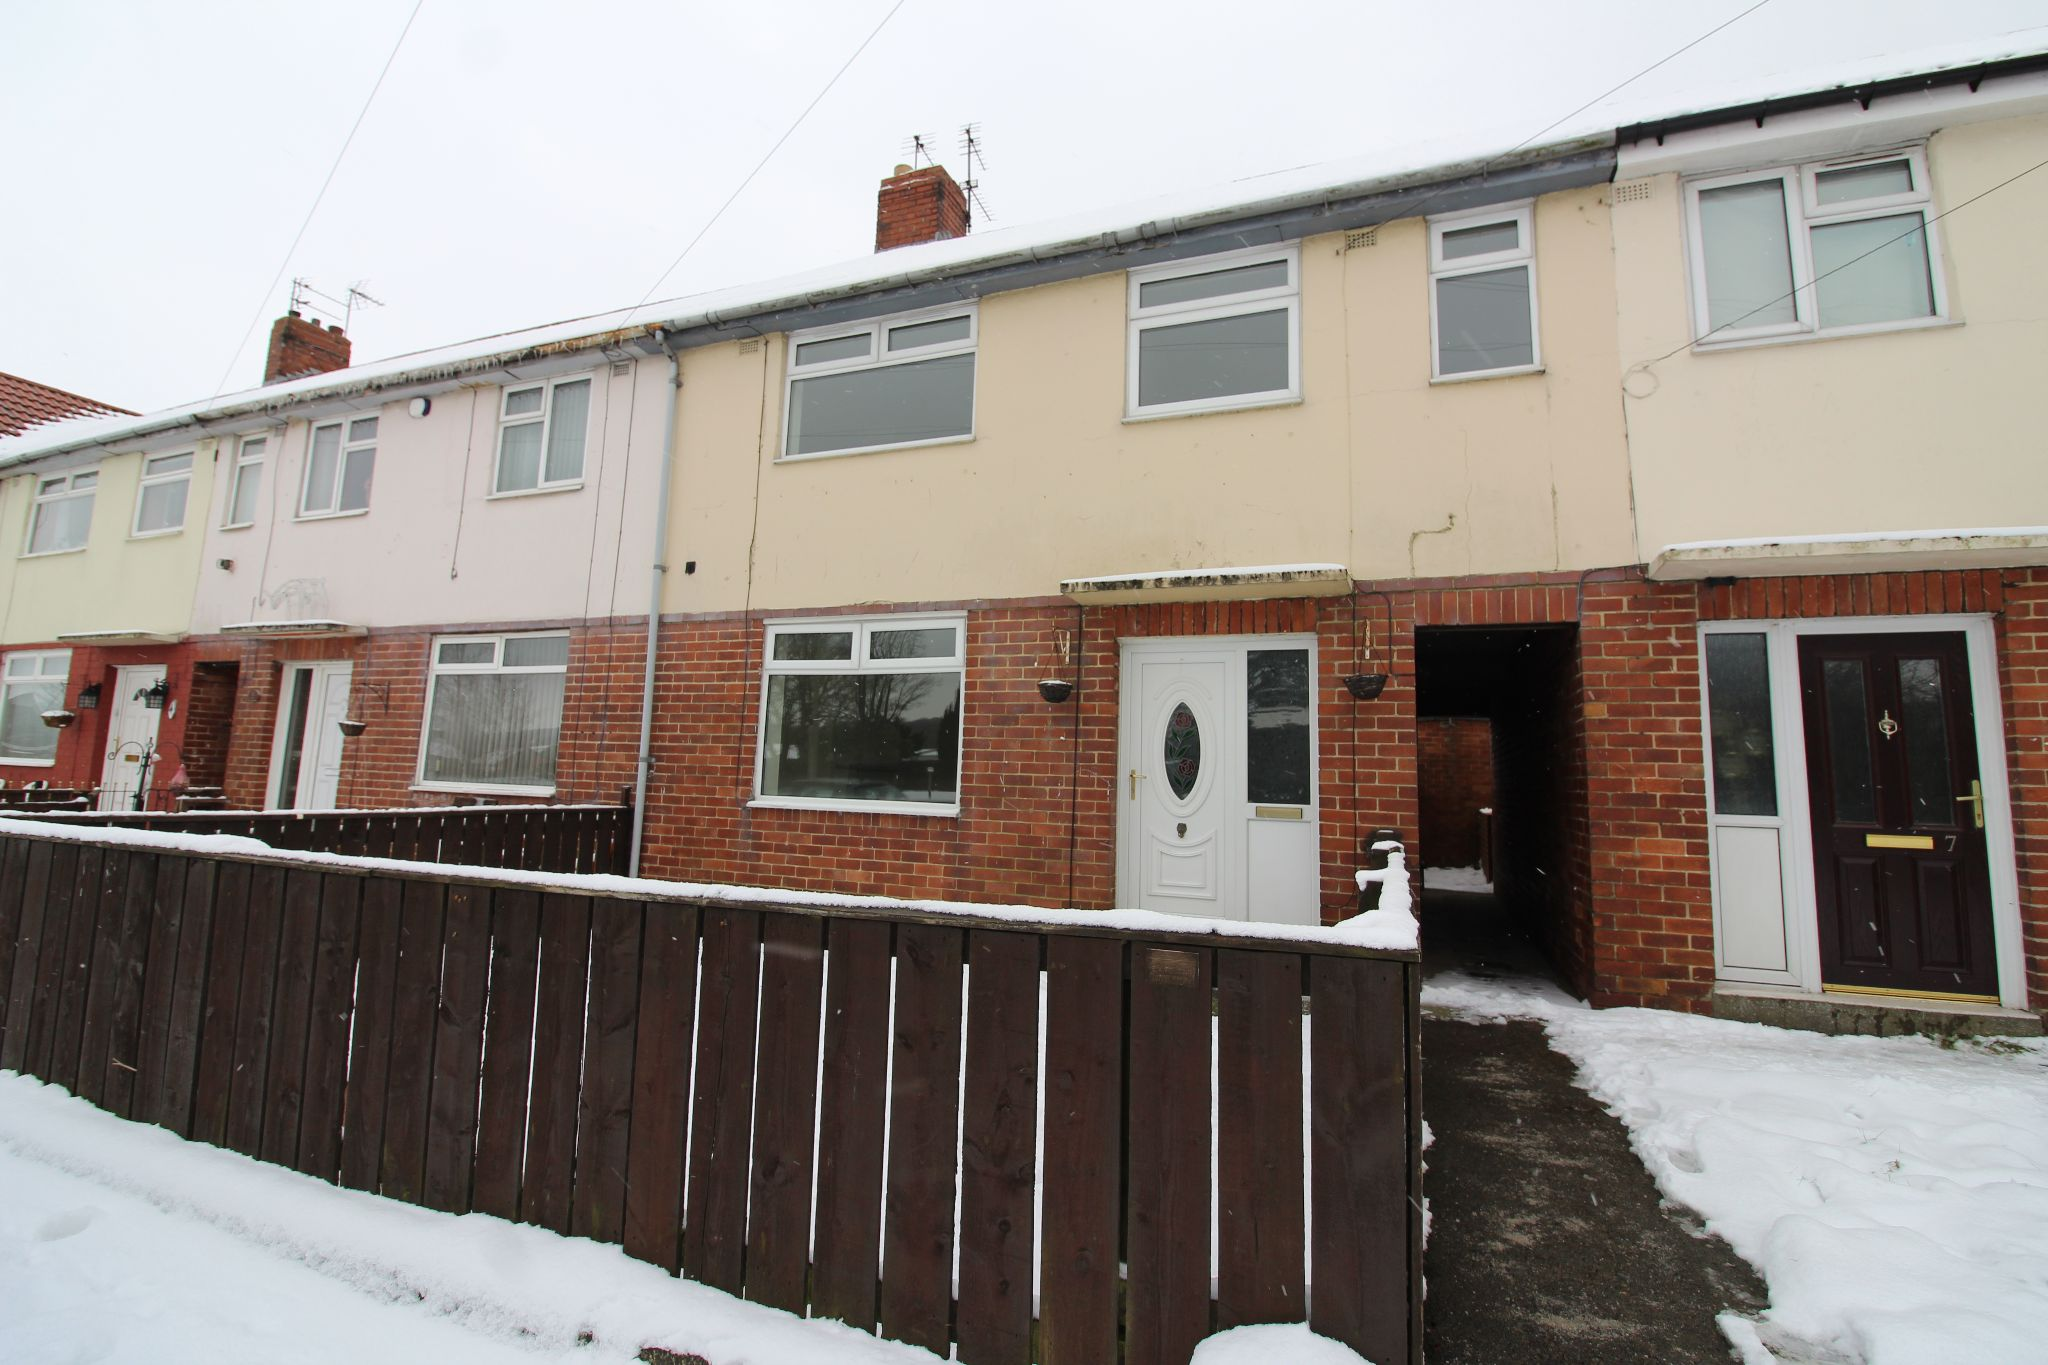 3 bedroom mid terraced house Let Agreed in Crook - Photograph 3.